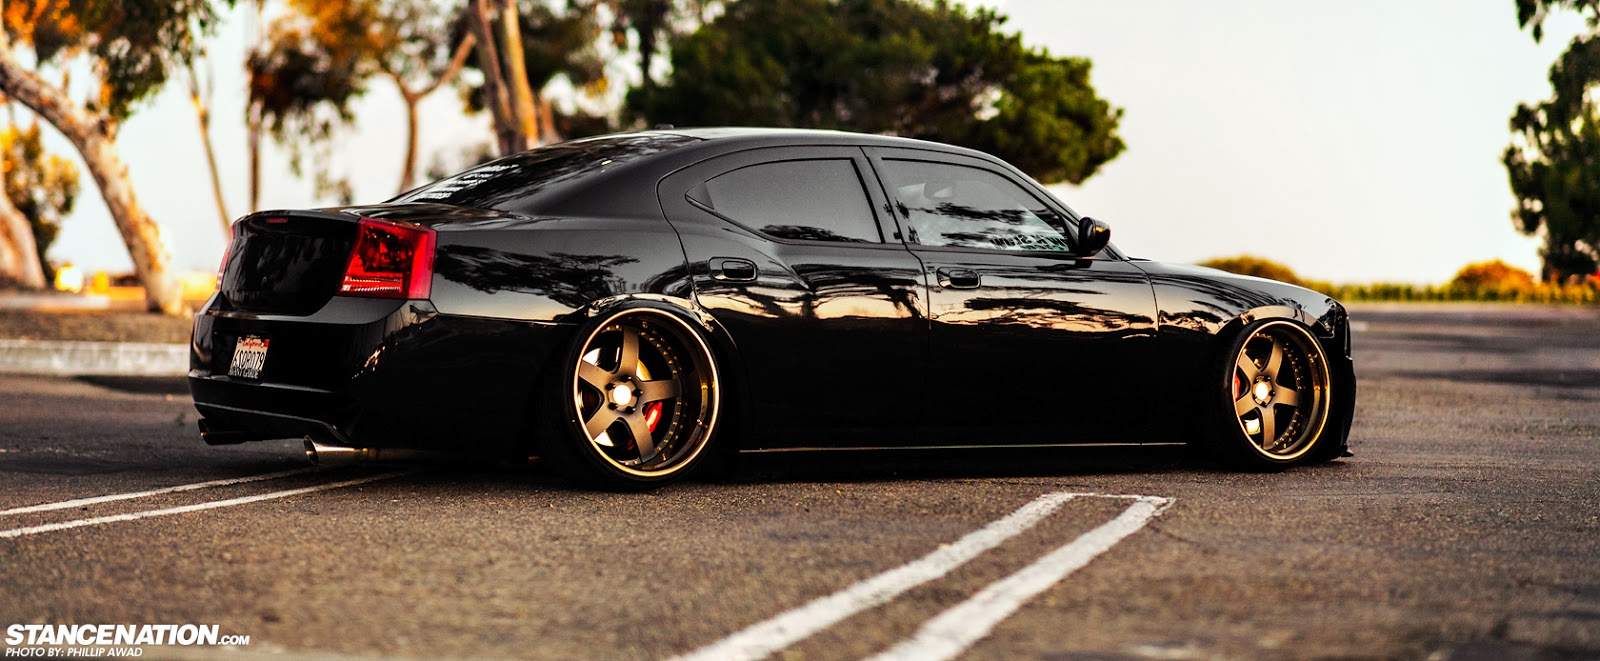 Pick of The Day: Stanced Dodge Charger Looks More Beastly Than Ever : ebeasts